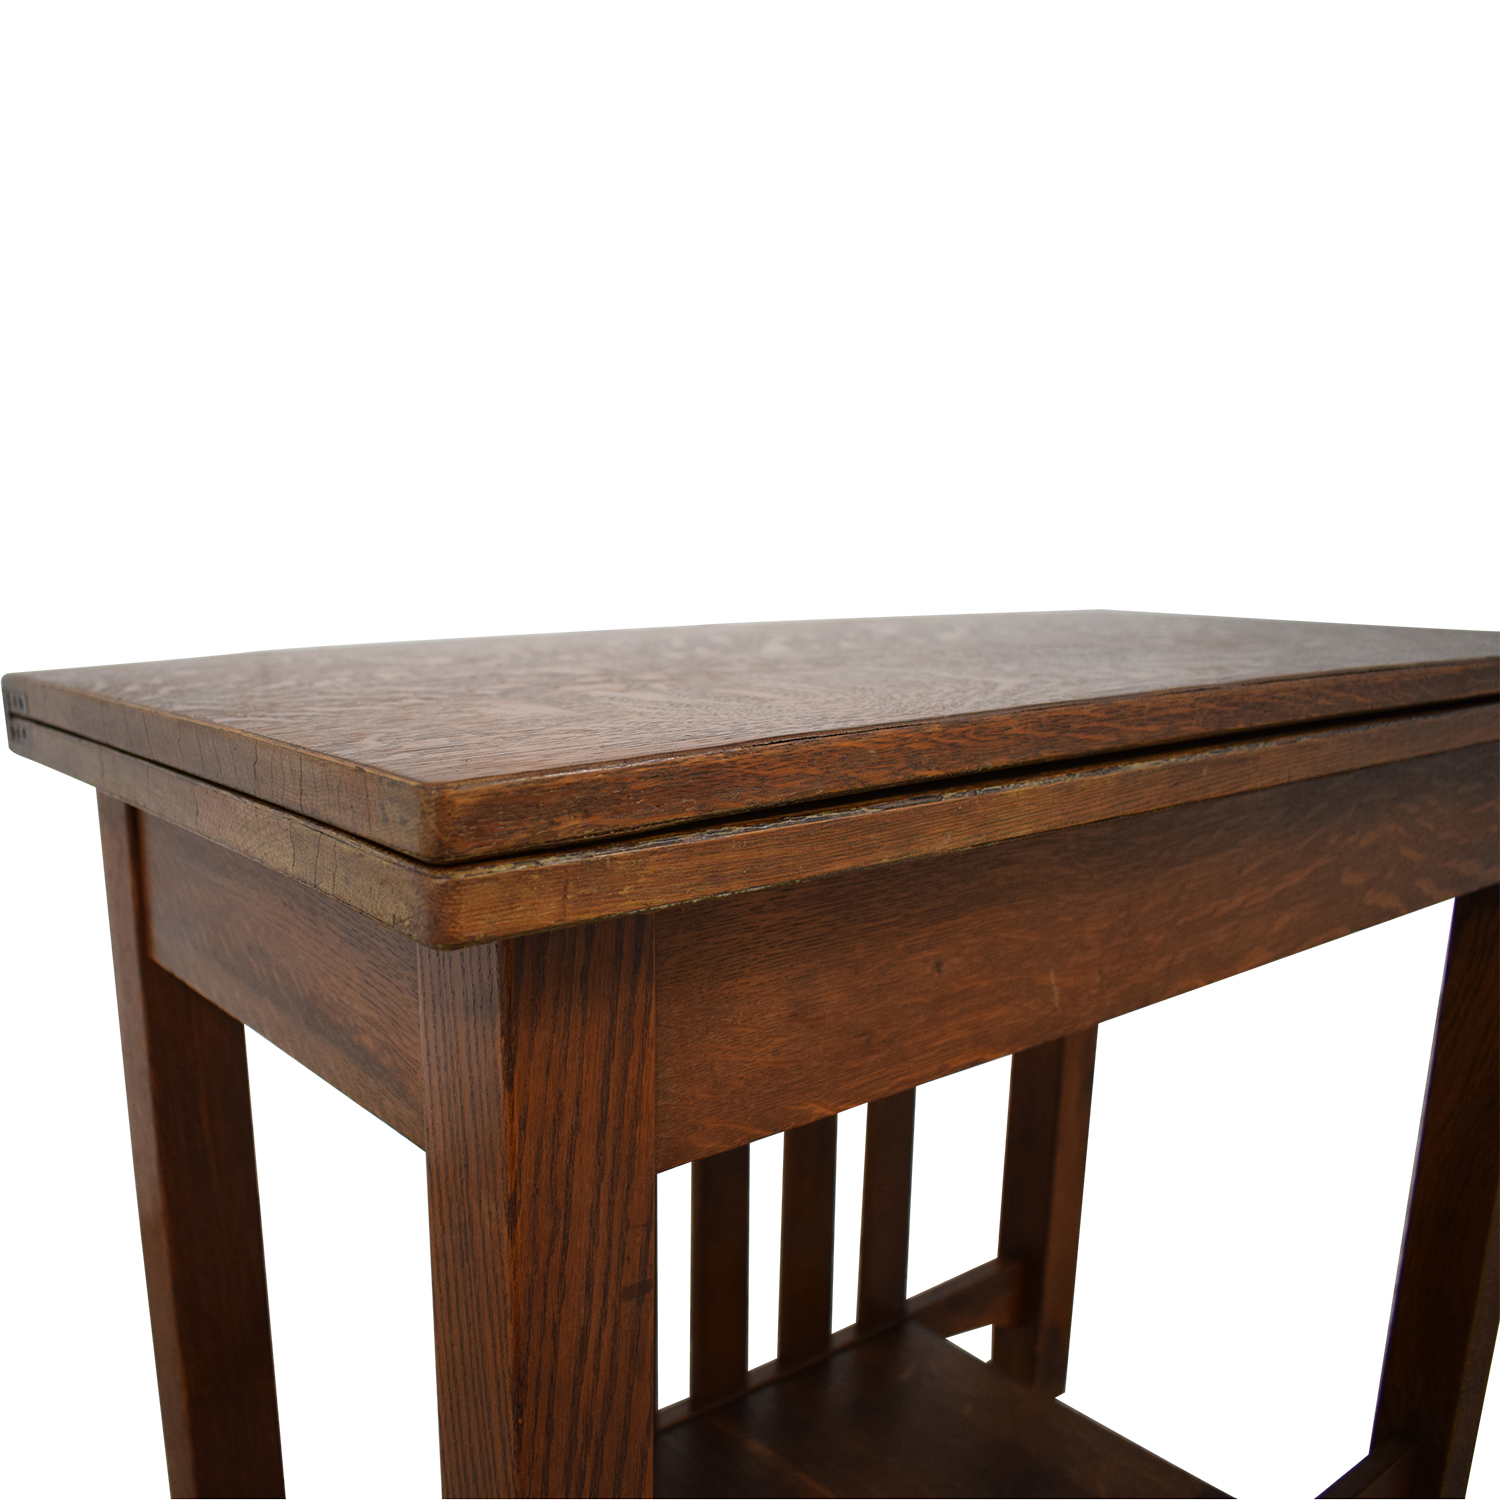 Stickley Furniture Stickley Game Table COPPER